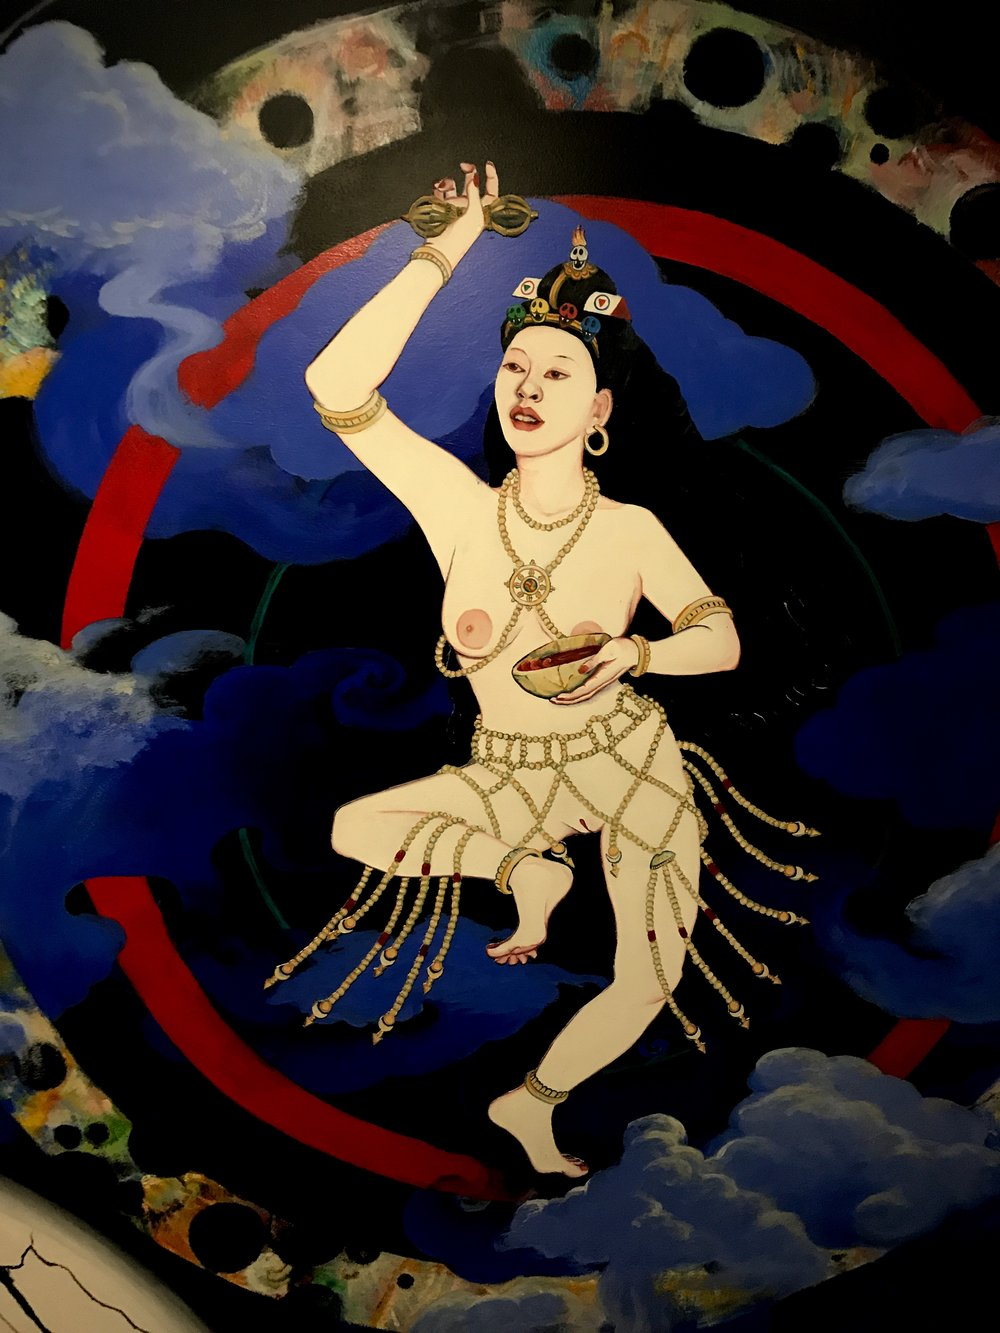 The great female mystic, yogini and Buddha Yeshe Tsogyel who helped to establish the systems of Tantra and Dzogchen in Tibet, India and Nepal.